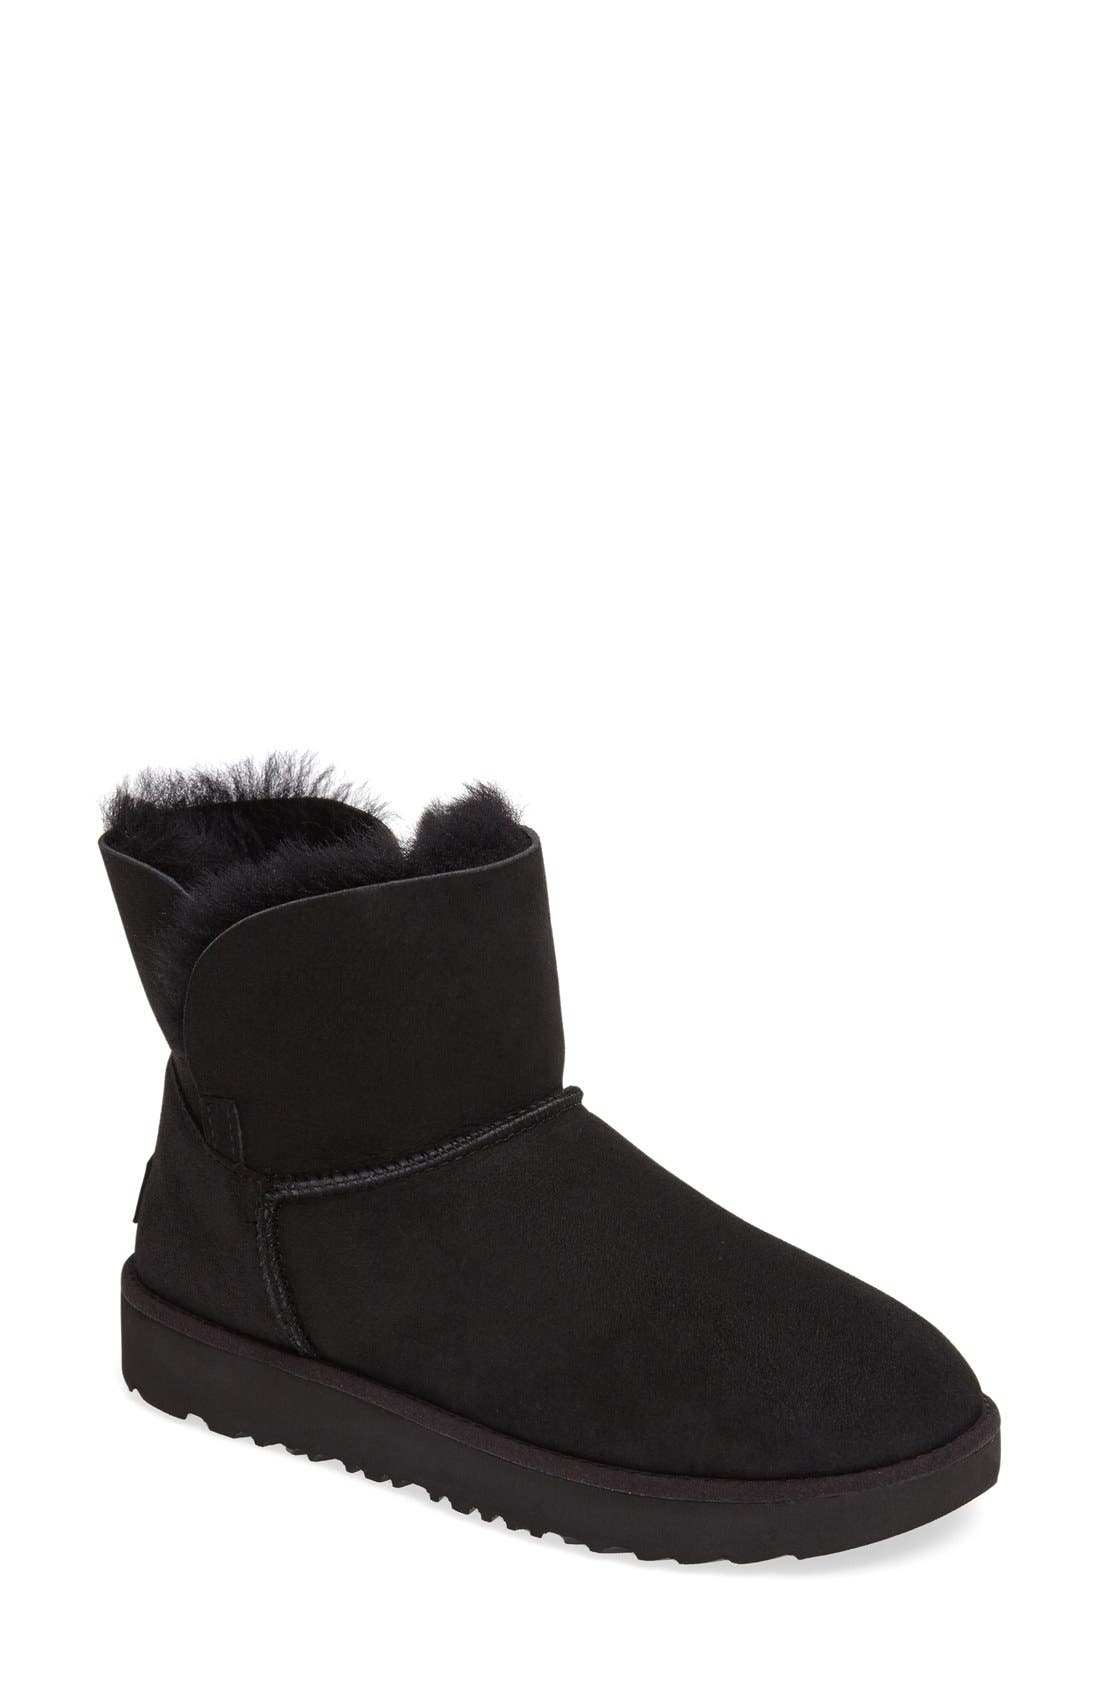 Alternate Image 1 Selected - UGG® Classic Cuff Mini Boot (Women)